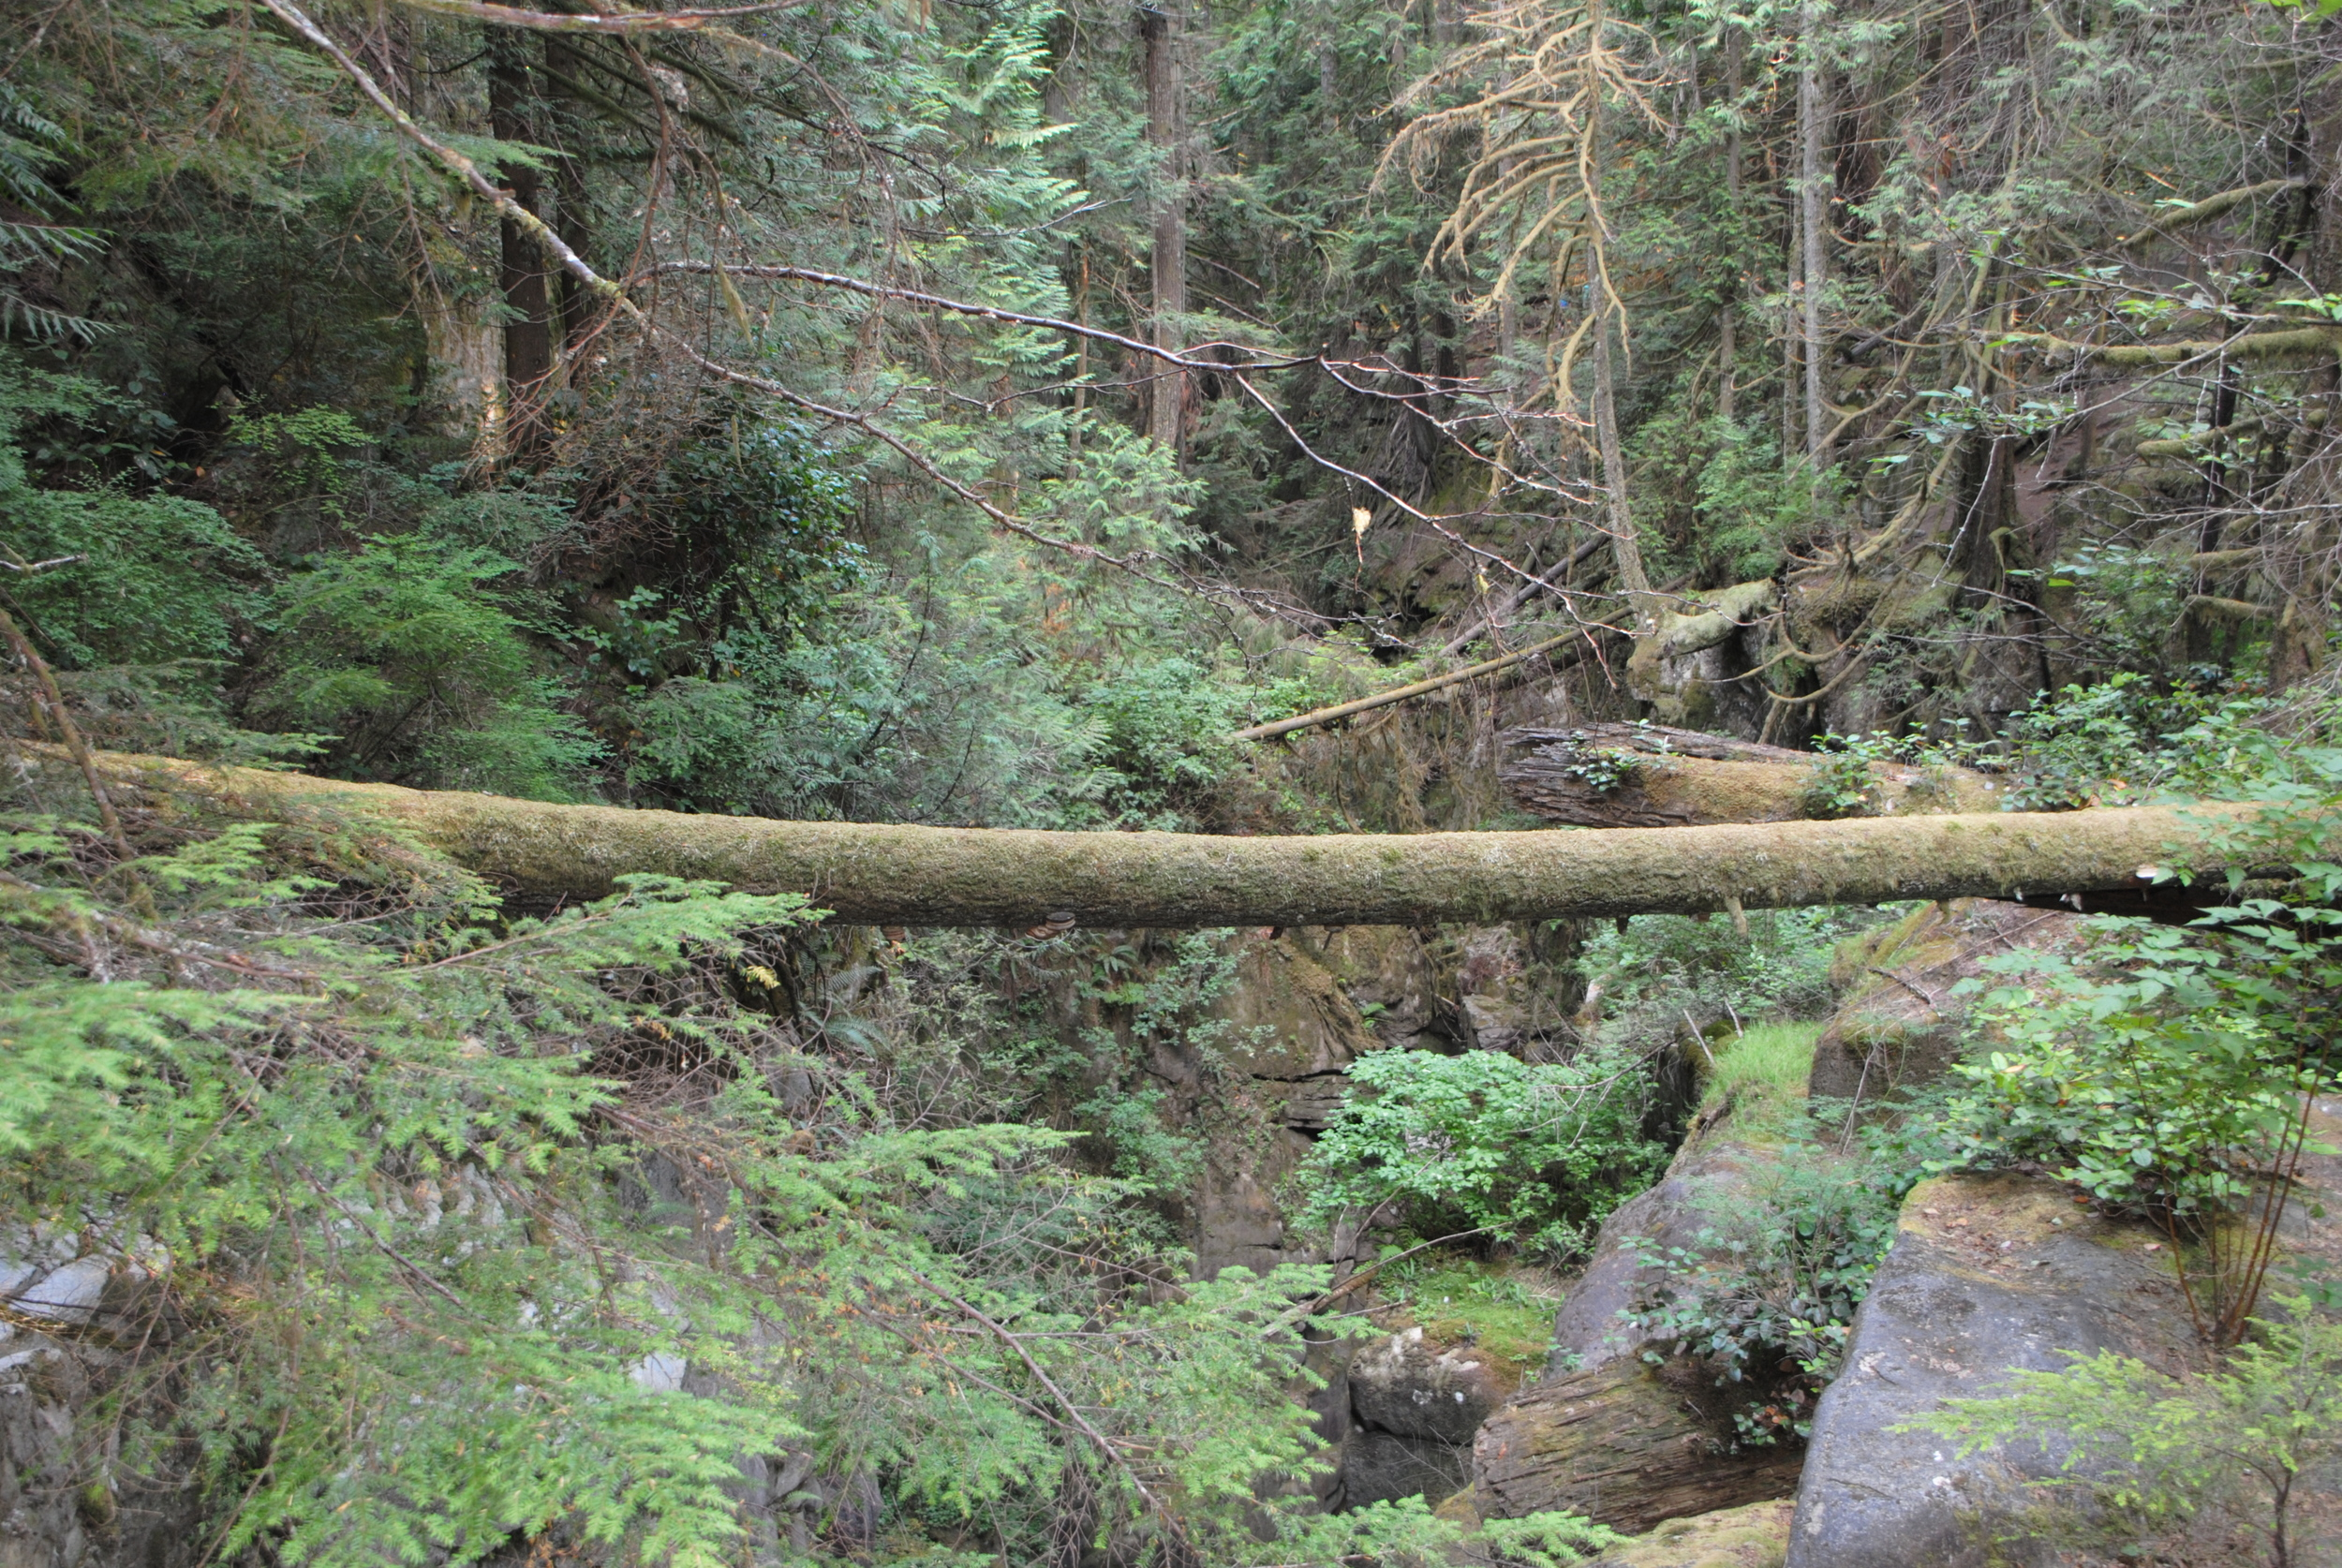 Moss covered log spanning the ravine over the falls.